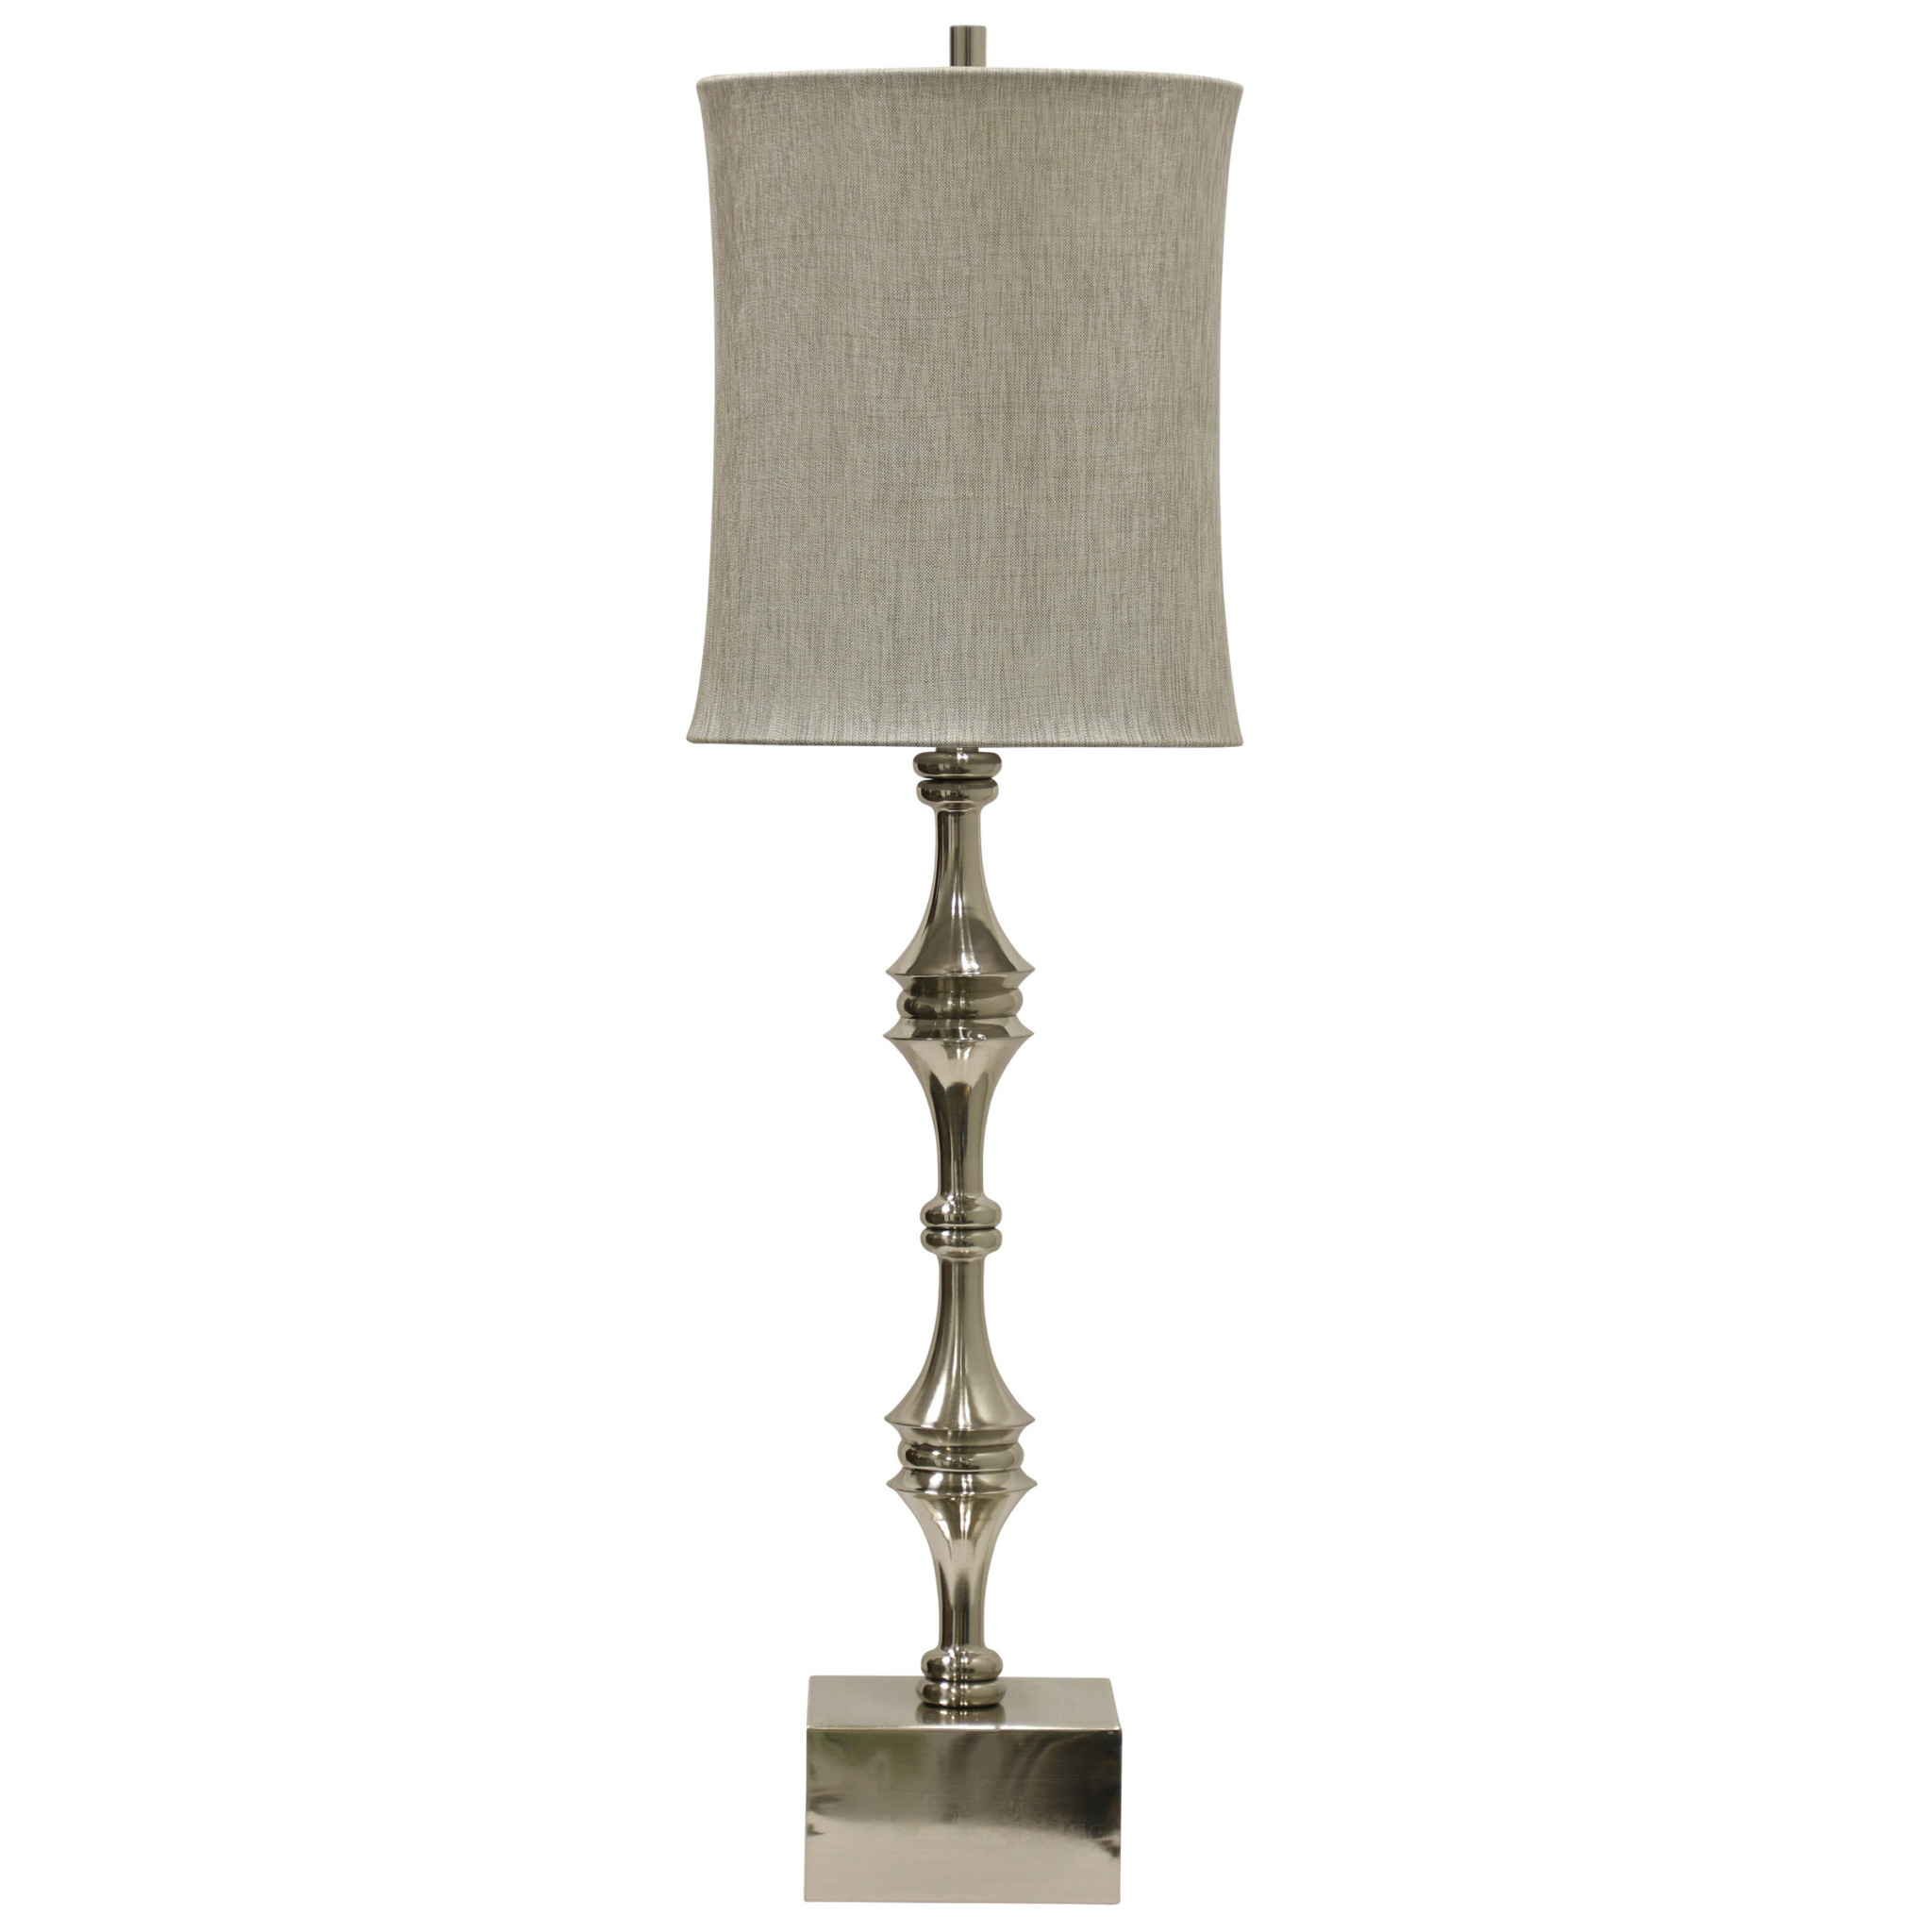 ESSEX TABLE LAMP - disc